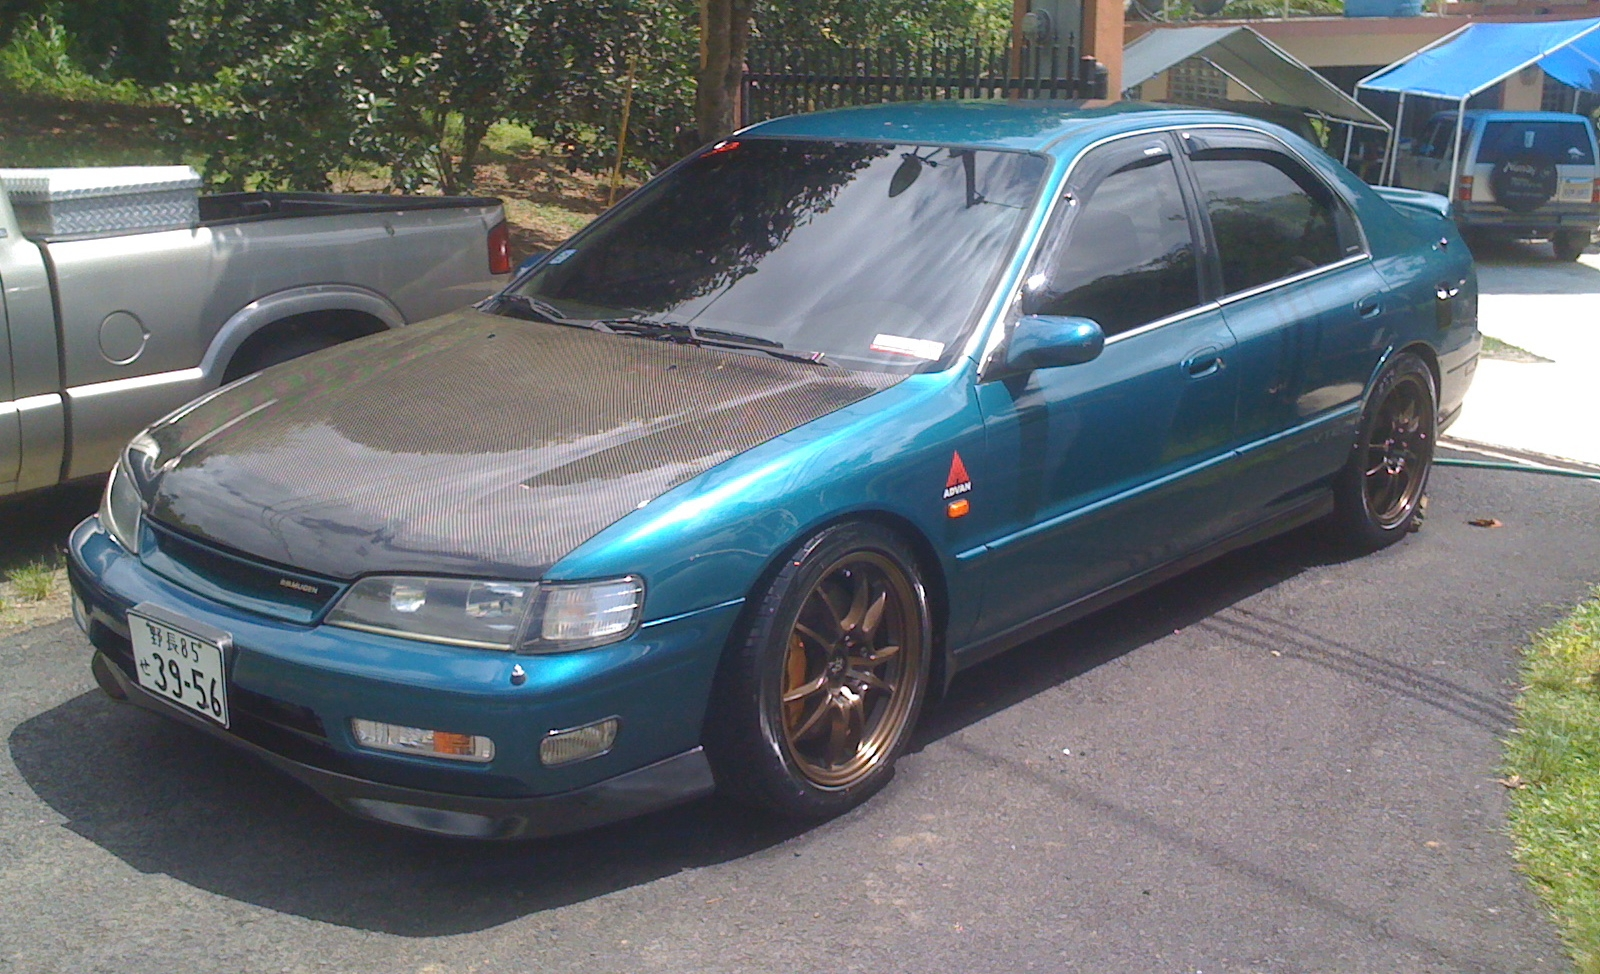 Honda Accord 0-60 >> BEBEJDM 1994 Honda Accord Specs, Photos, Modification Info at CarDomain